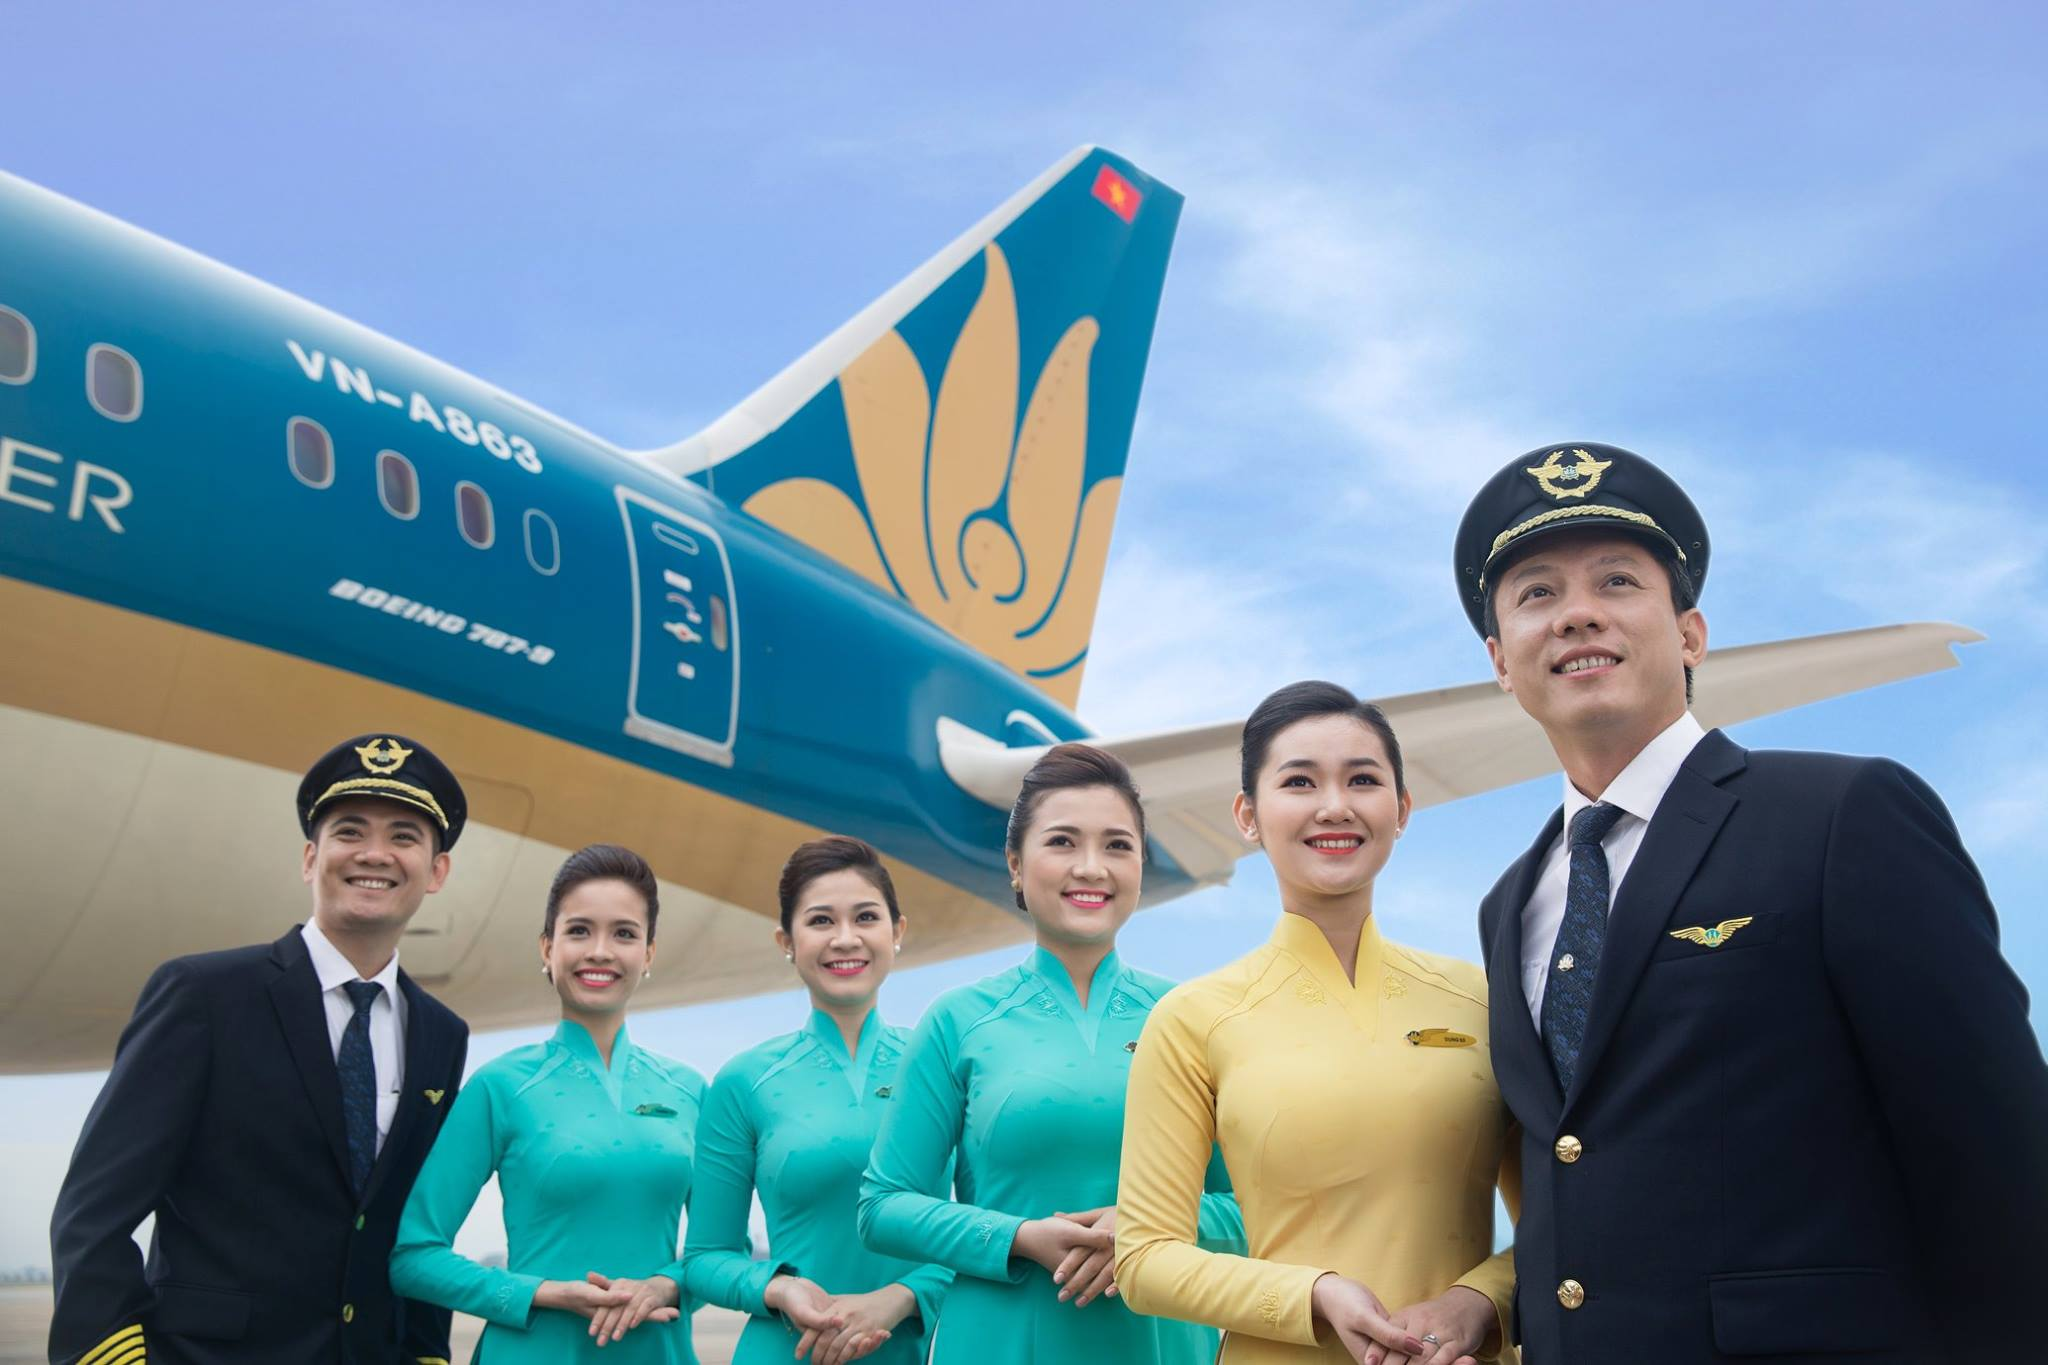 ภาพจาก Facebook Vietnam Airlines